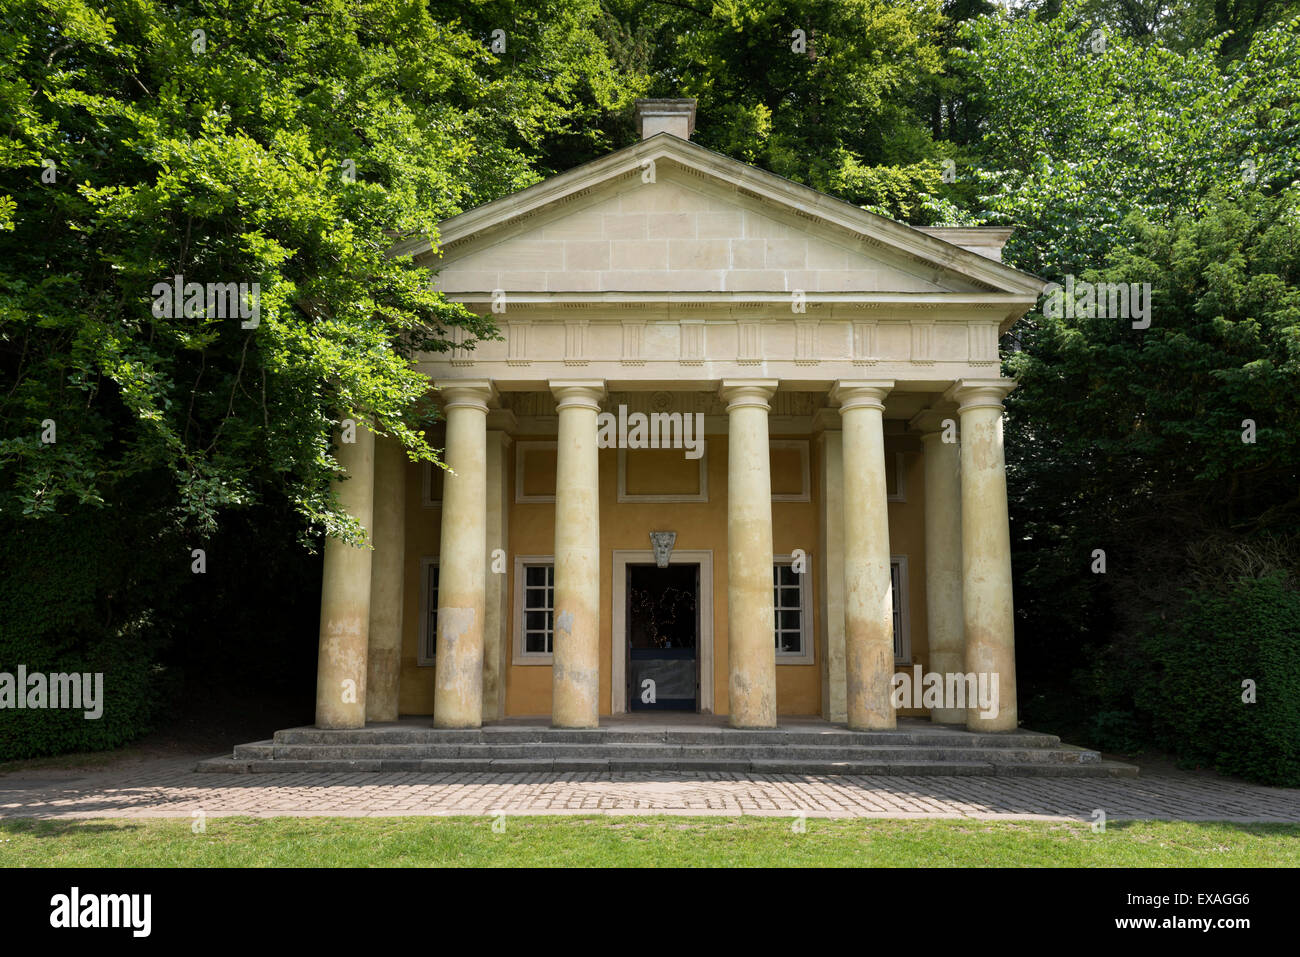 Temple of Piety - Stock Image